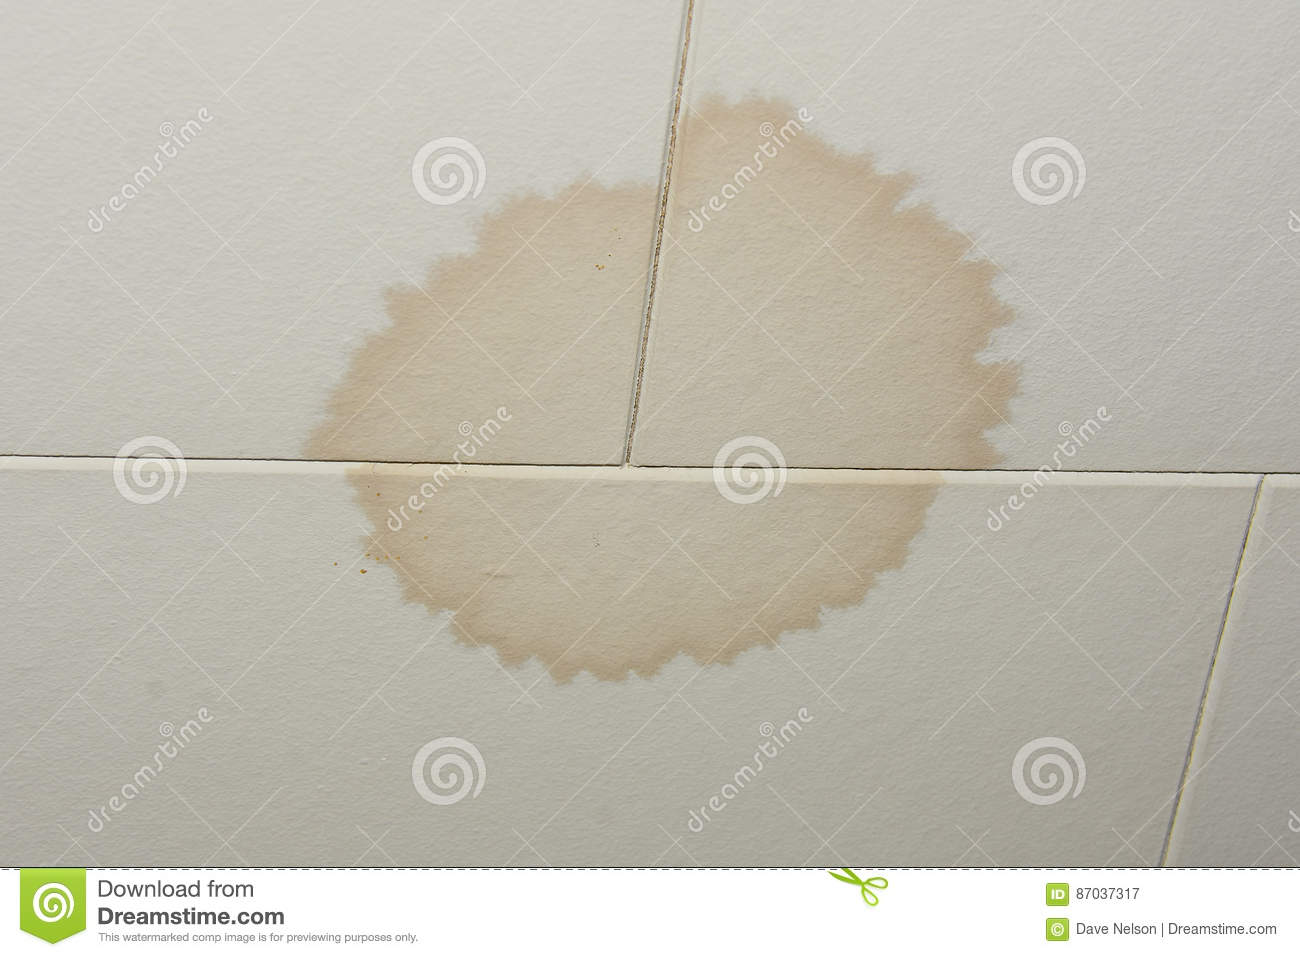 Water Leak From Roof stain on ceiling from water leak stock photo - image: 87037317